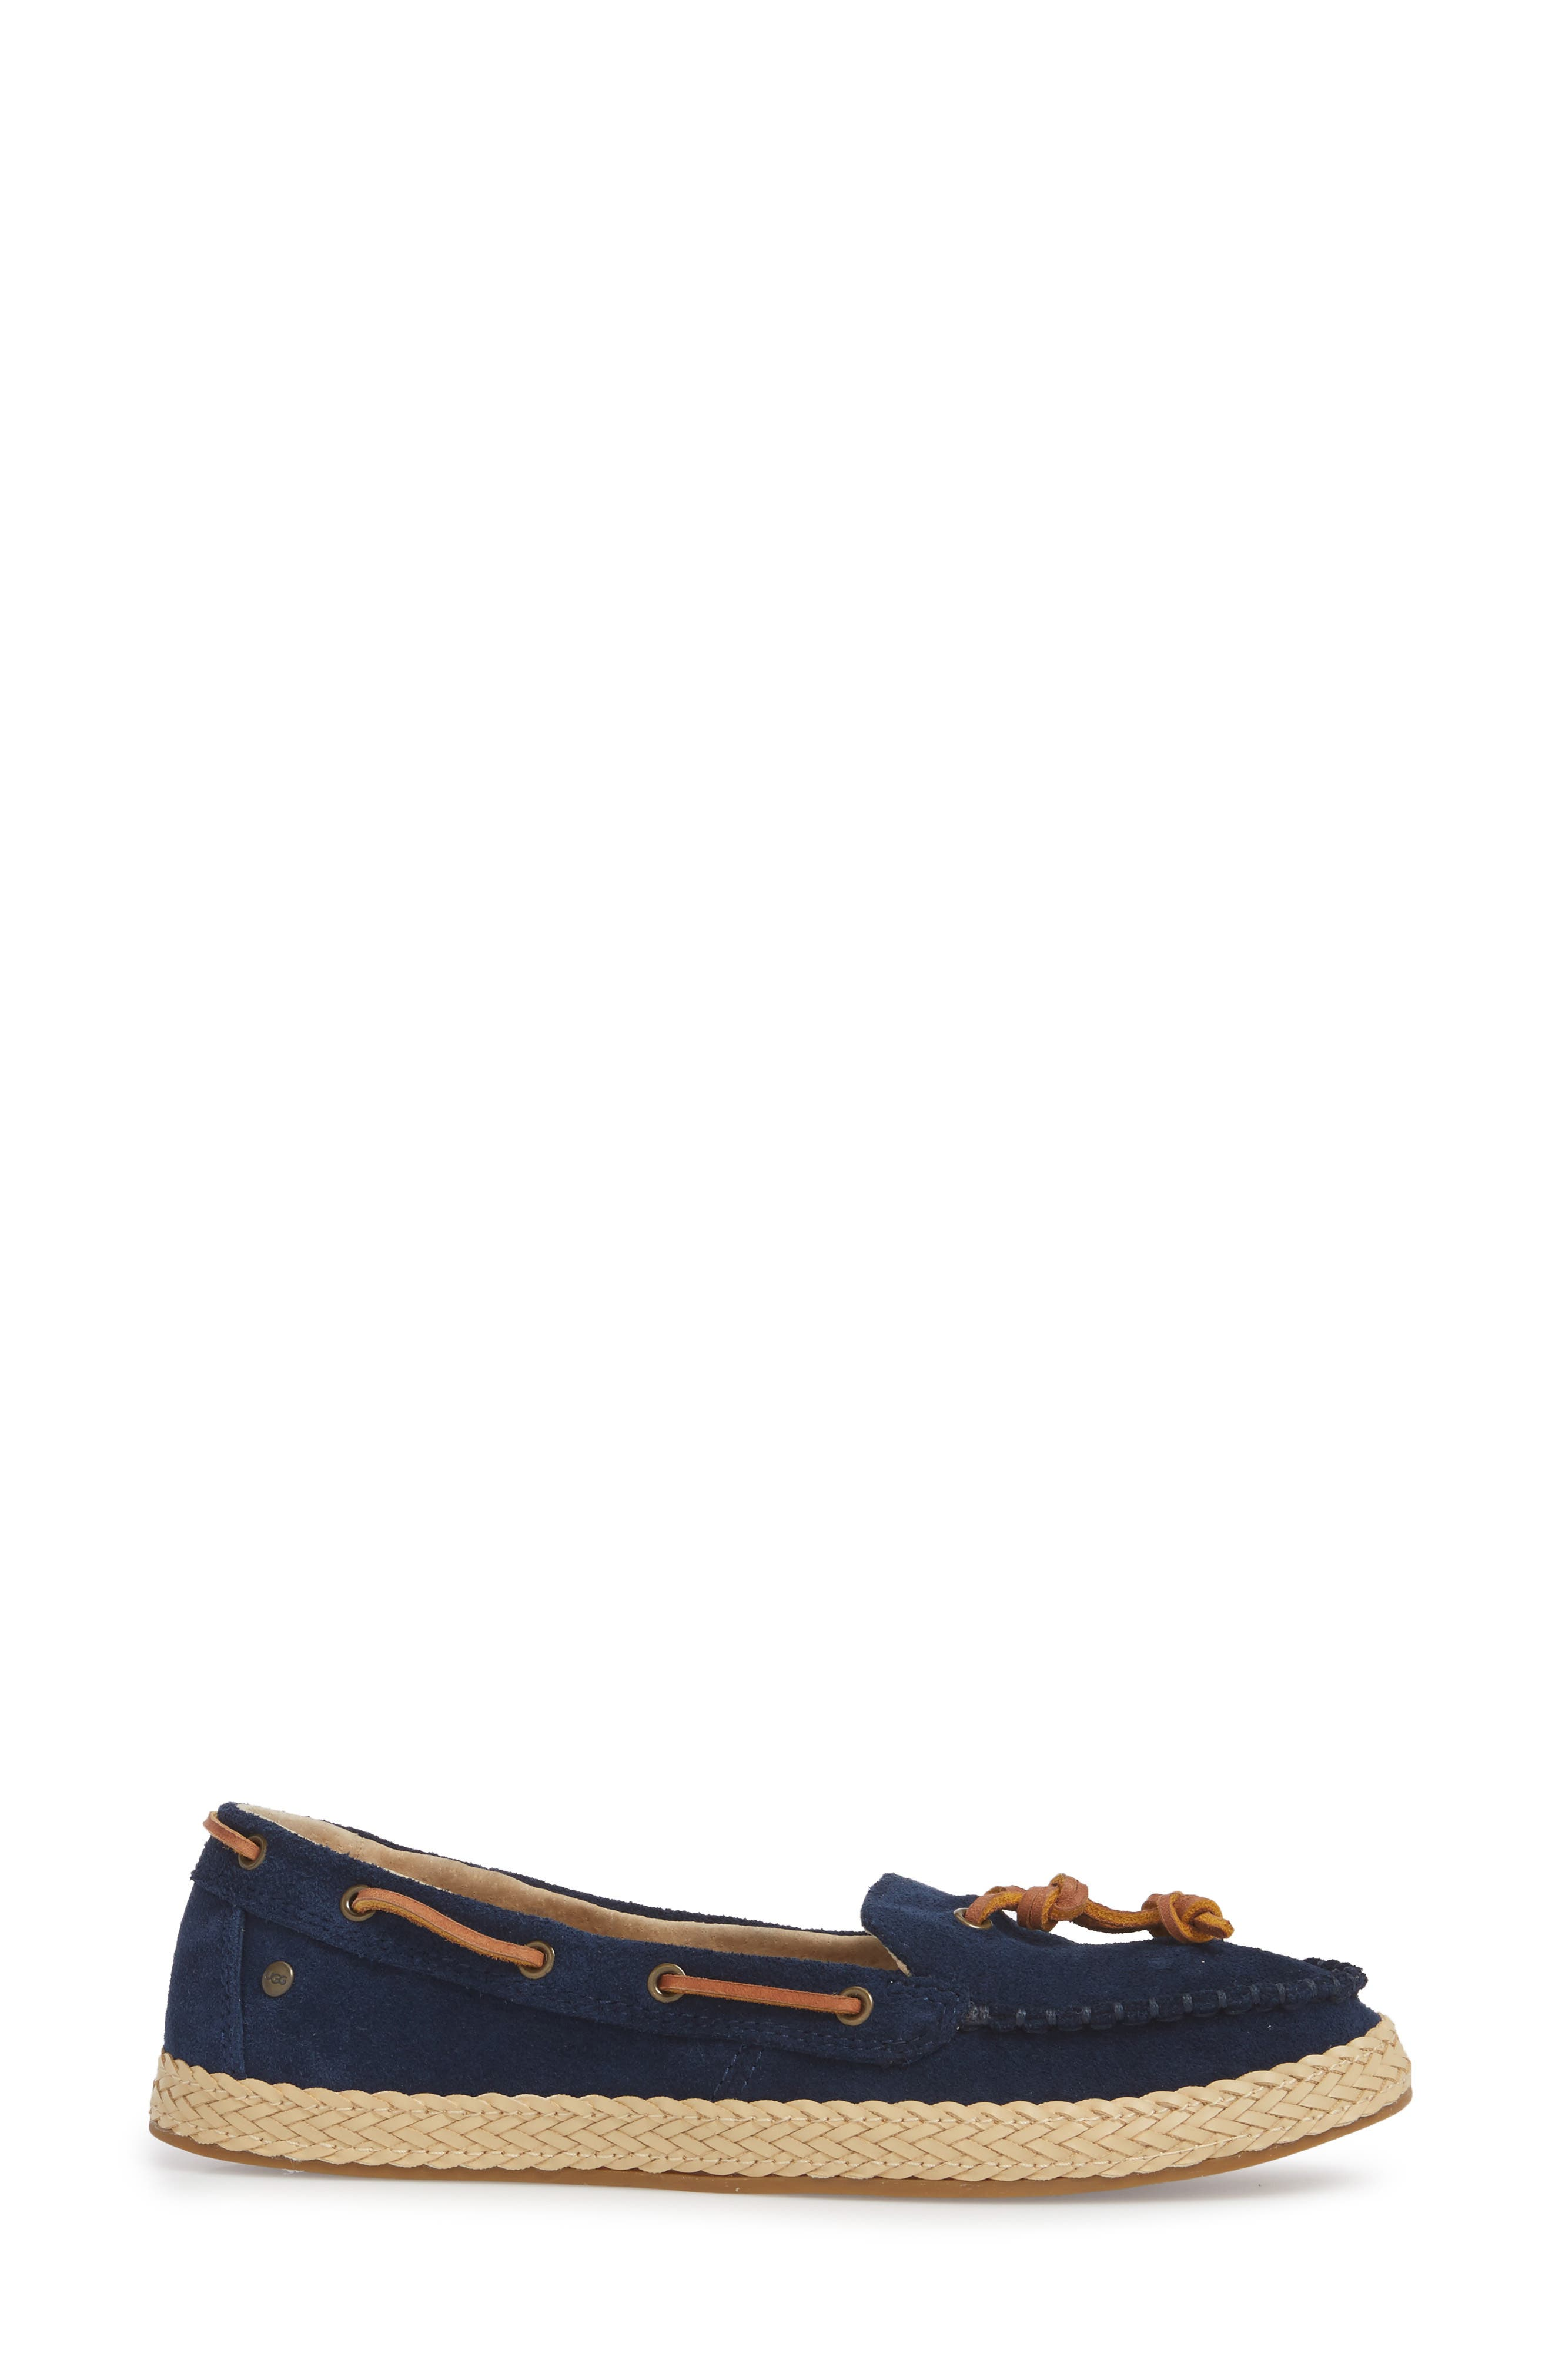 Channtal Loafer,                             Alternate thumbnail 6, color,